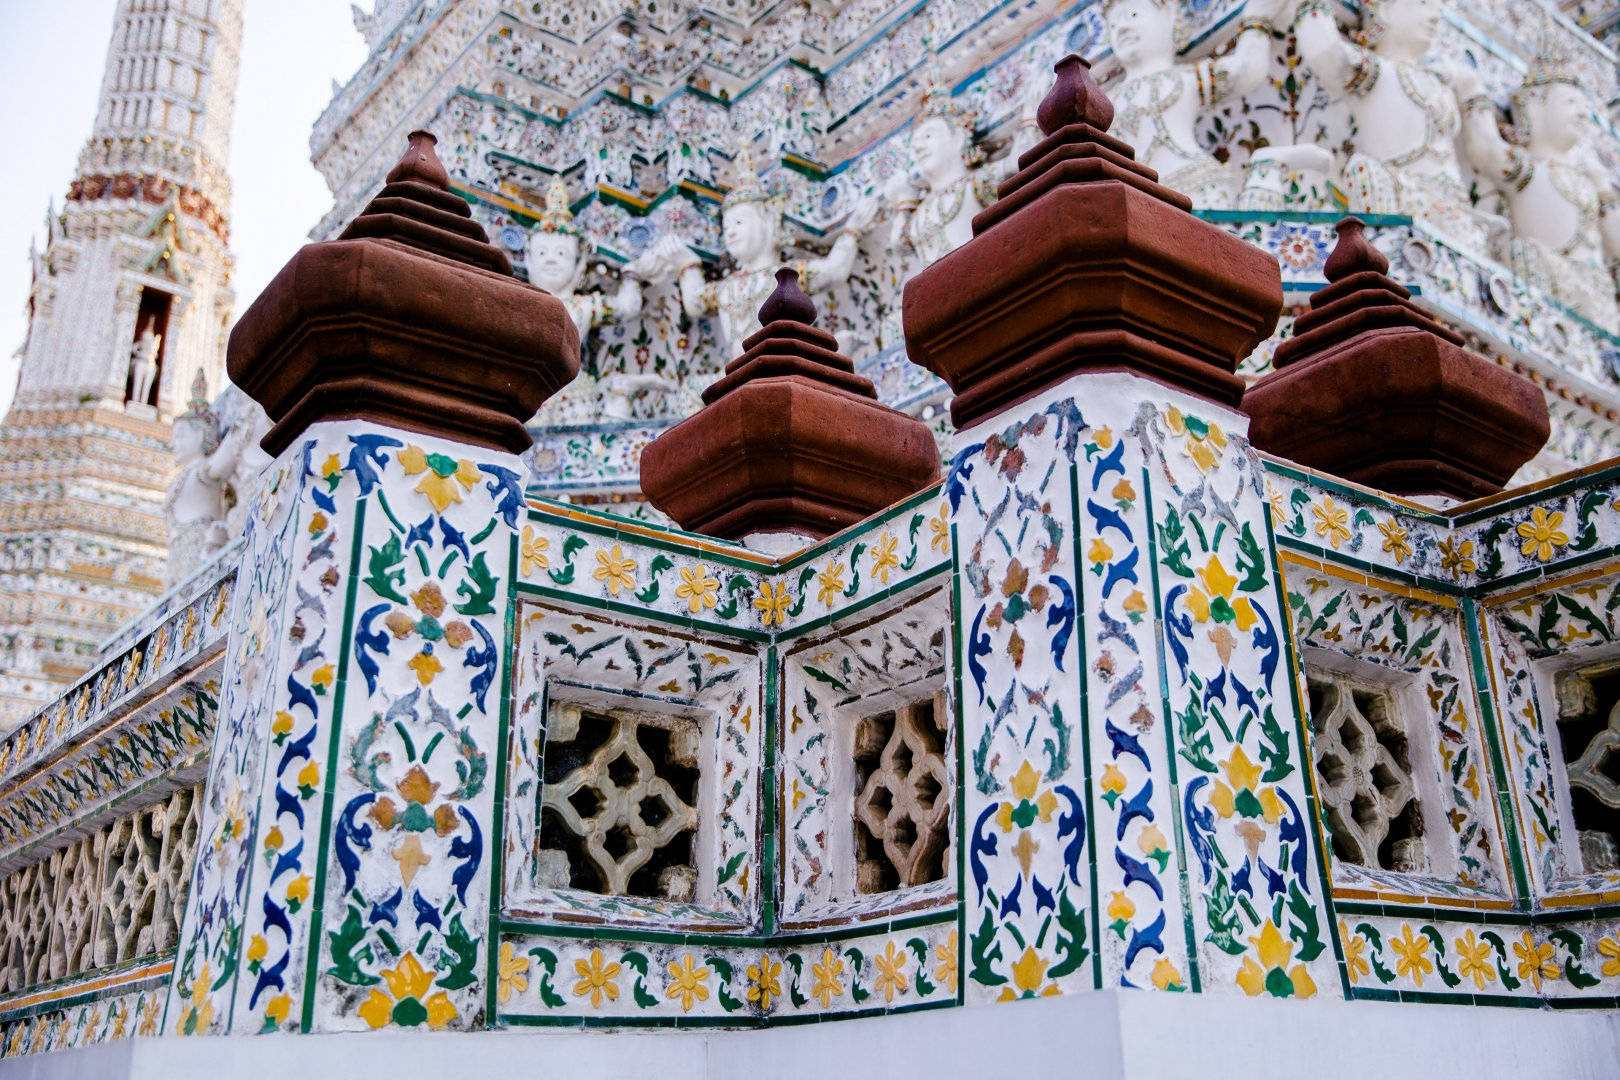 Holy places Architecture Place of worship Facade Building Historic site Temple Stone carving Temple Shrine Tourism Palace Carving Arch Hindu temple Monastery